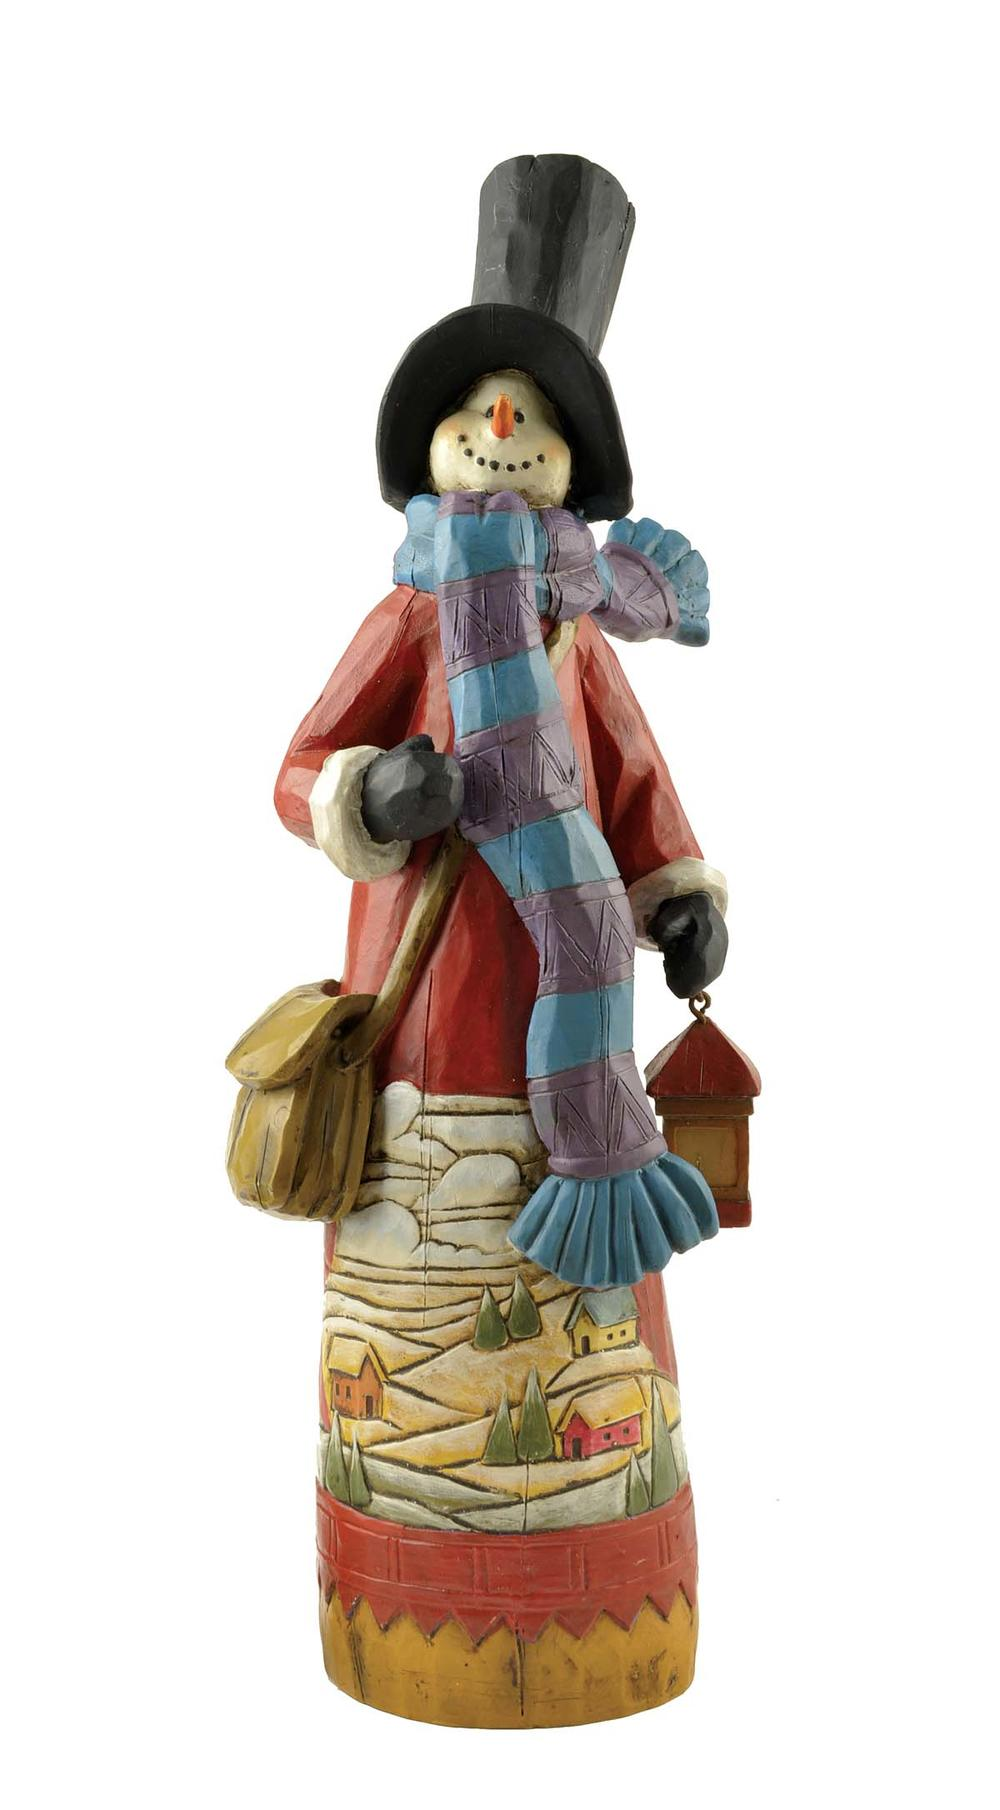 Best Selling Product Resin Christmas Decorative Snowman Figurine with Lantern PH15033